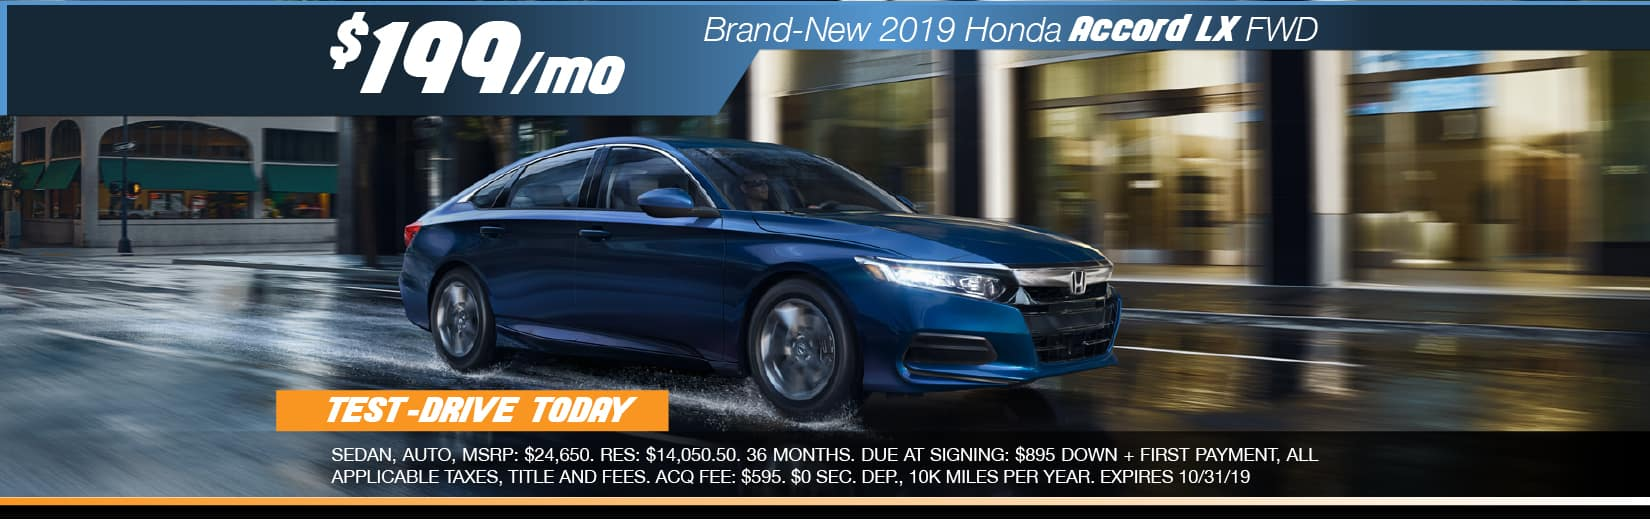 2019 Honda Accord LX FWD Lease for $199 a month for 36 months